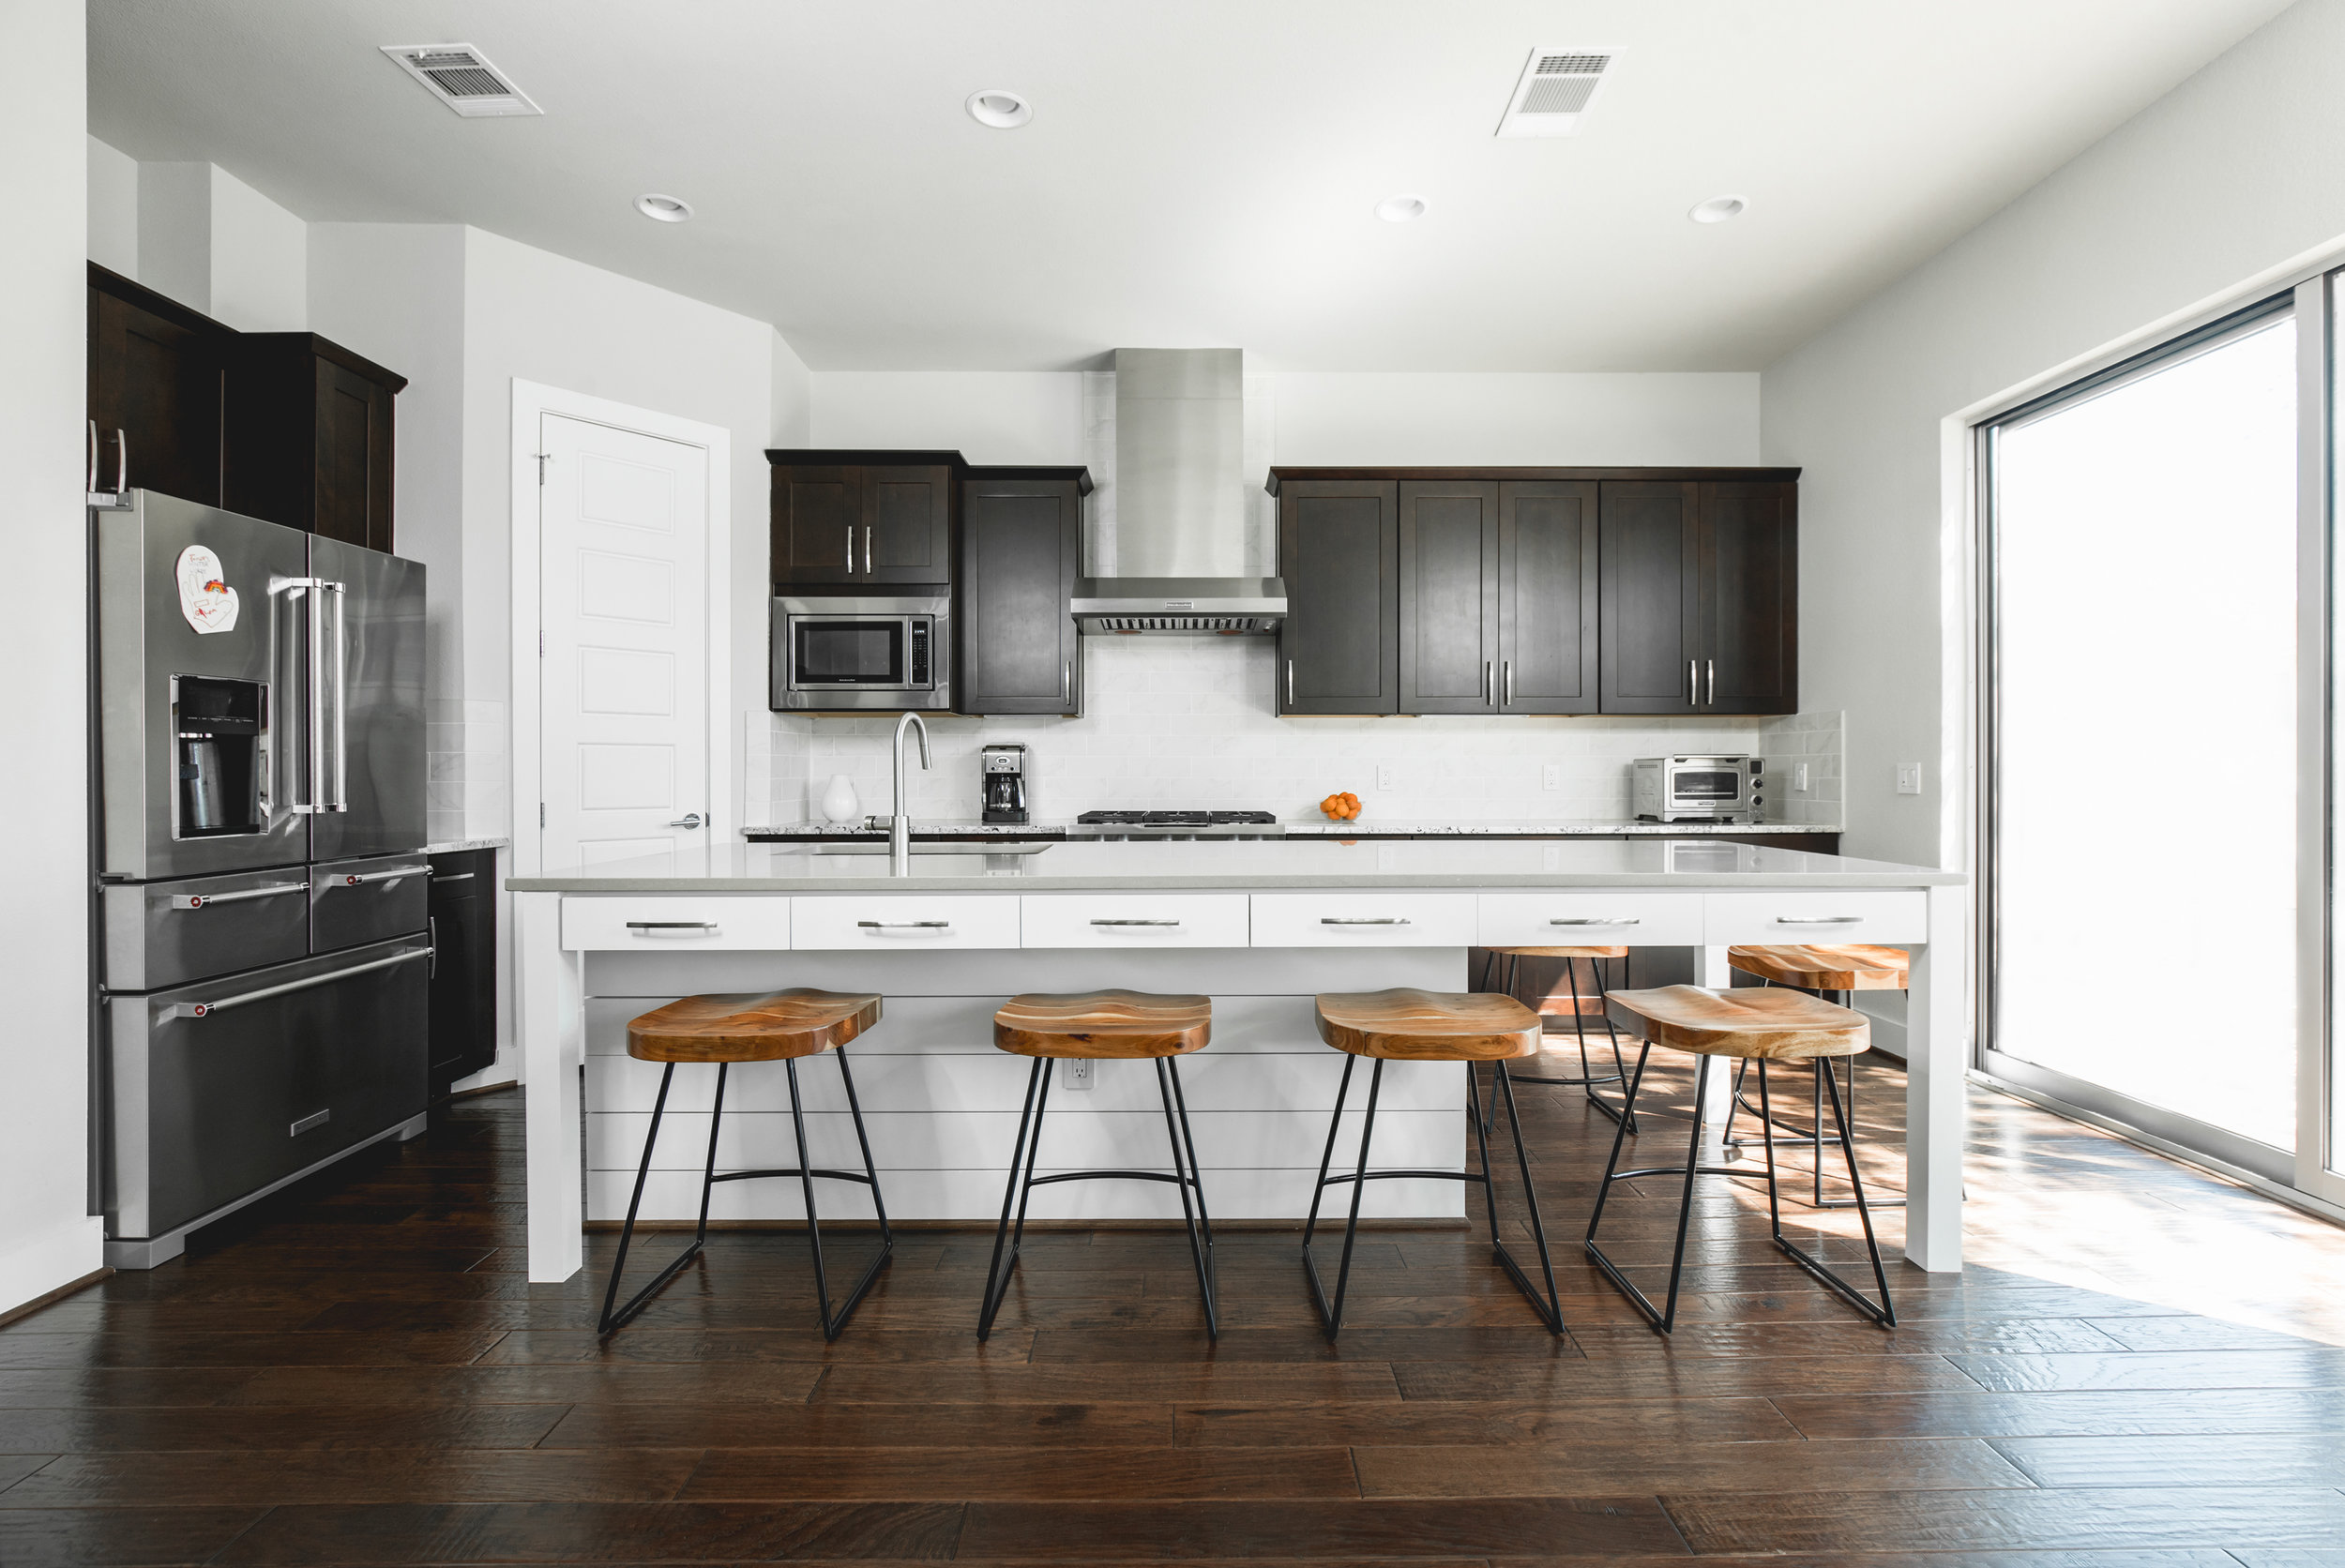 DEL CURTO kitchen - IN COLLABORATION WITH LIZ MACPHAIL Interiors, WITH PHOTOS BY BENNEtT Creative